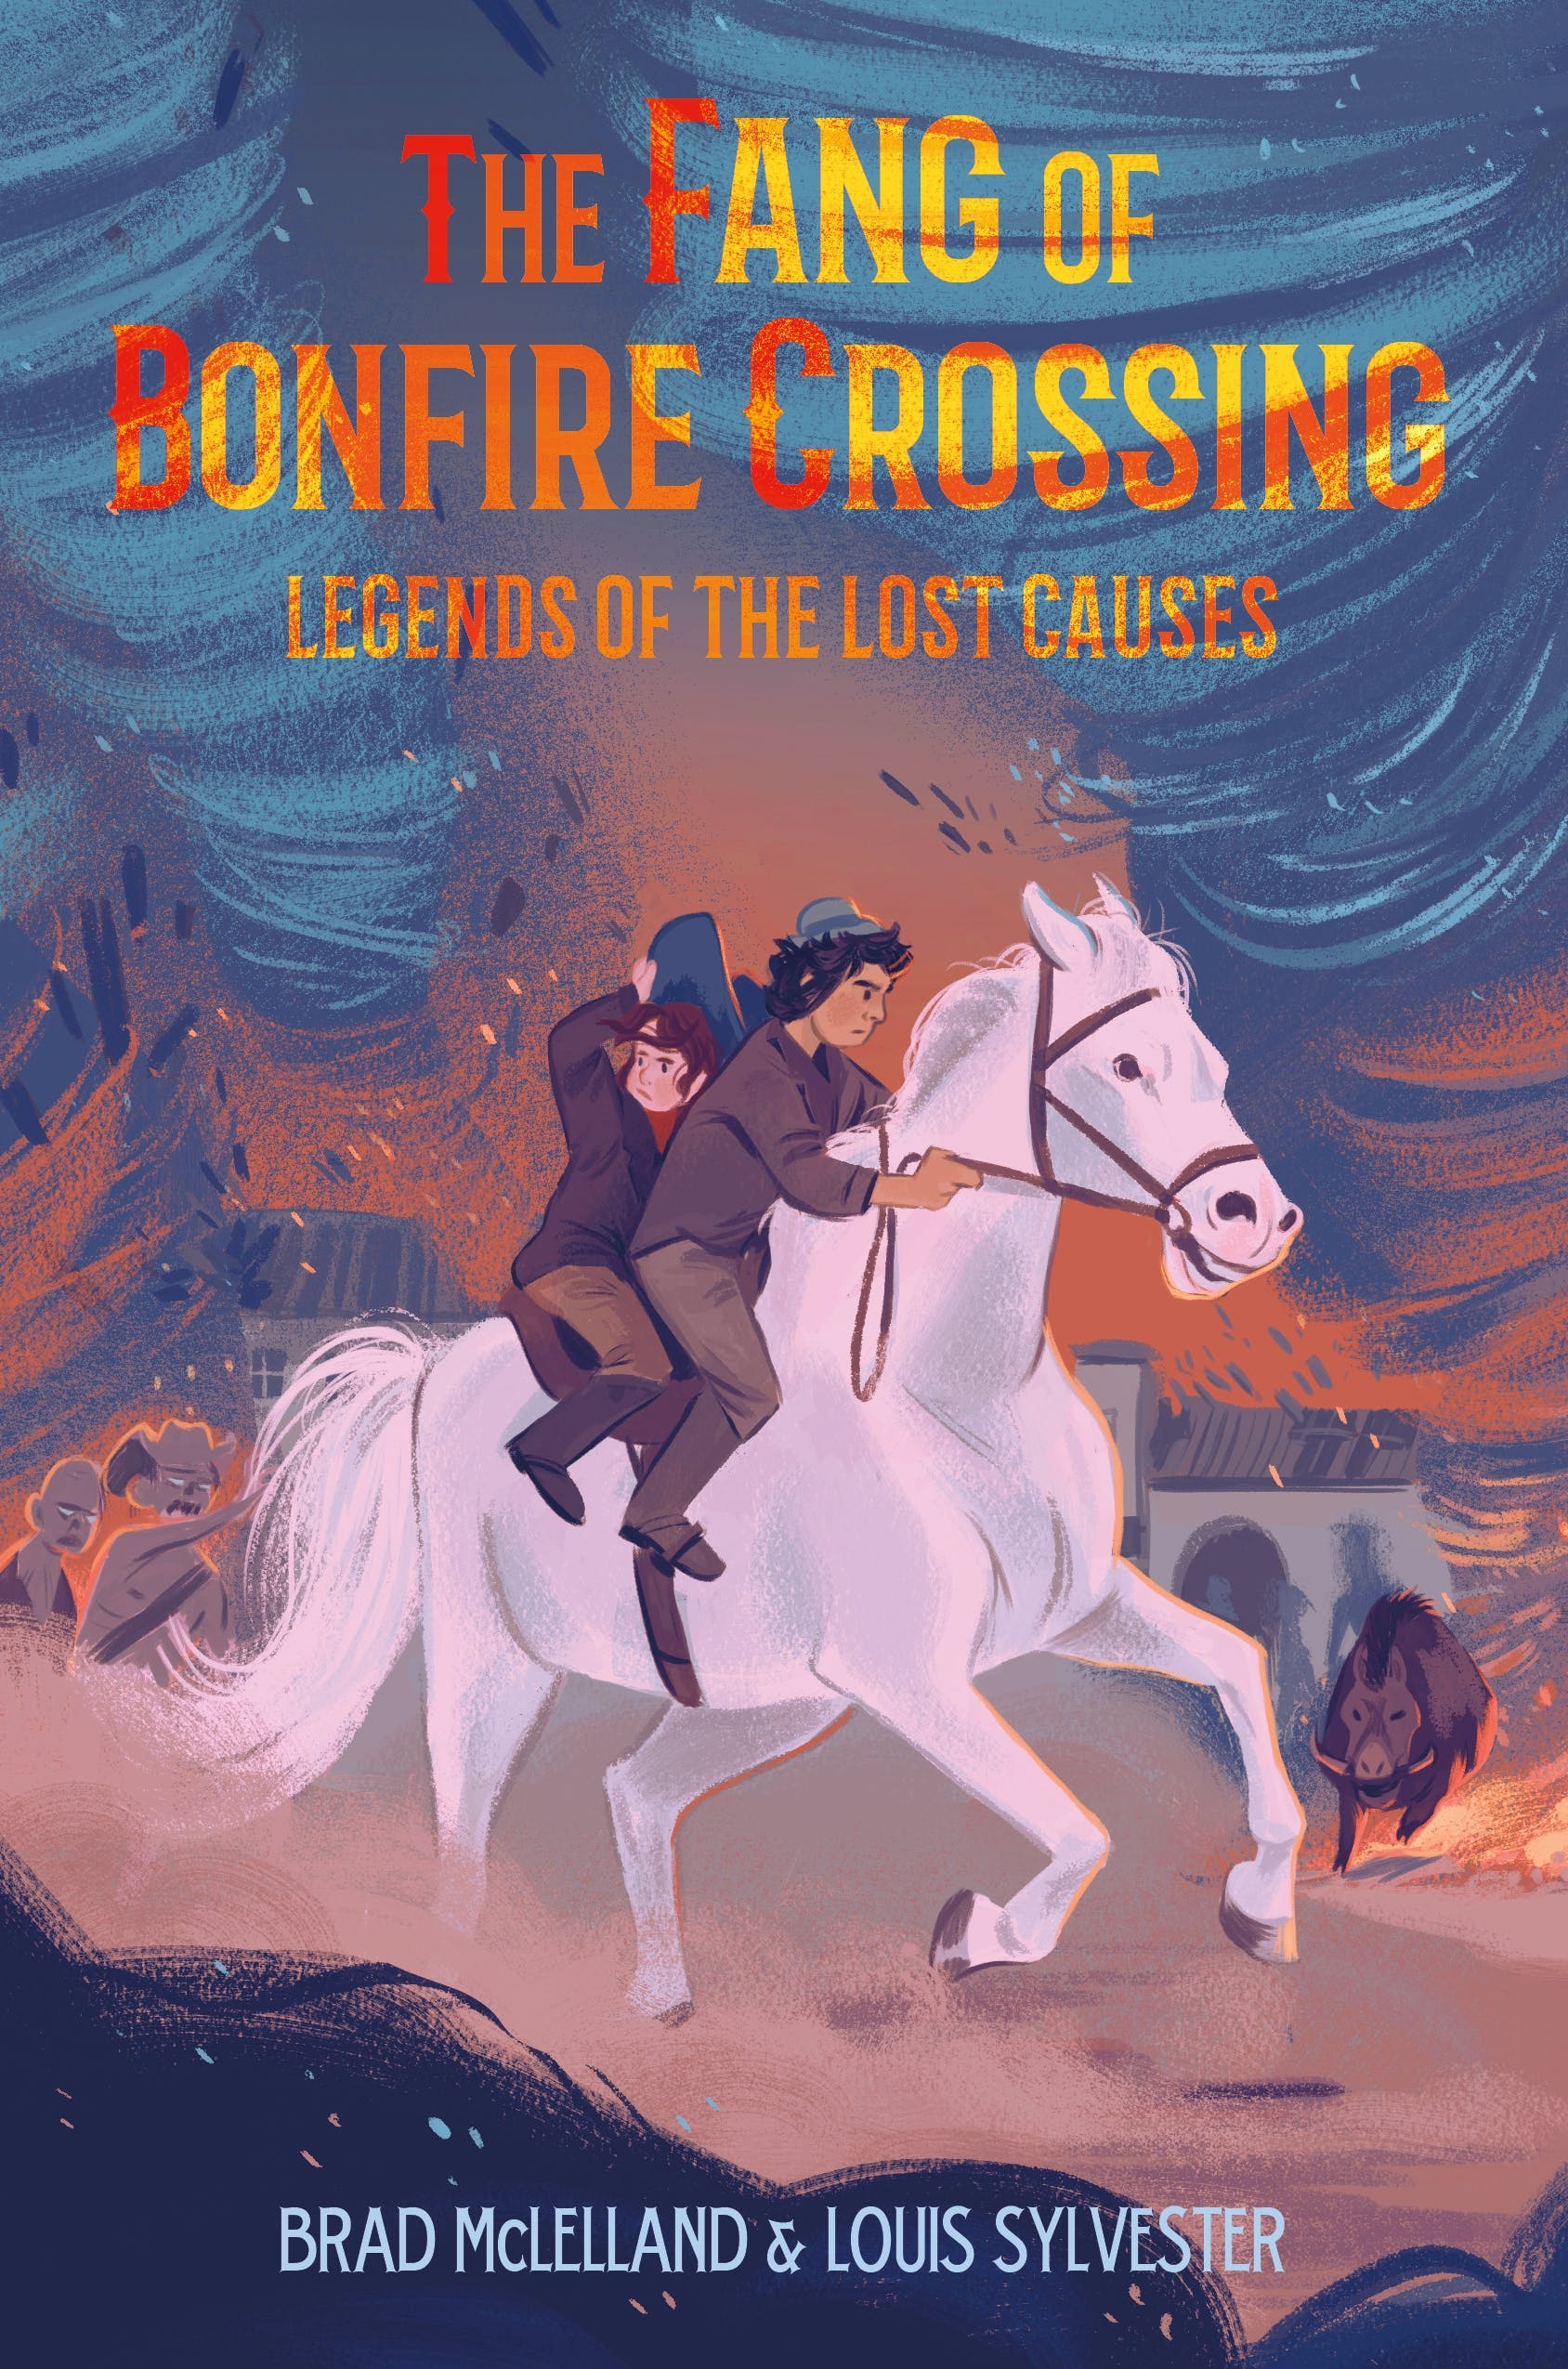 Image of The Fang of Bonfire Crossing: Legends of the Lost Causes